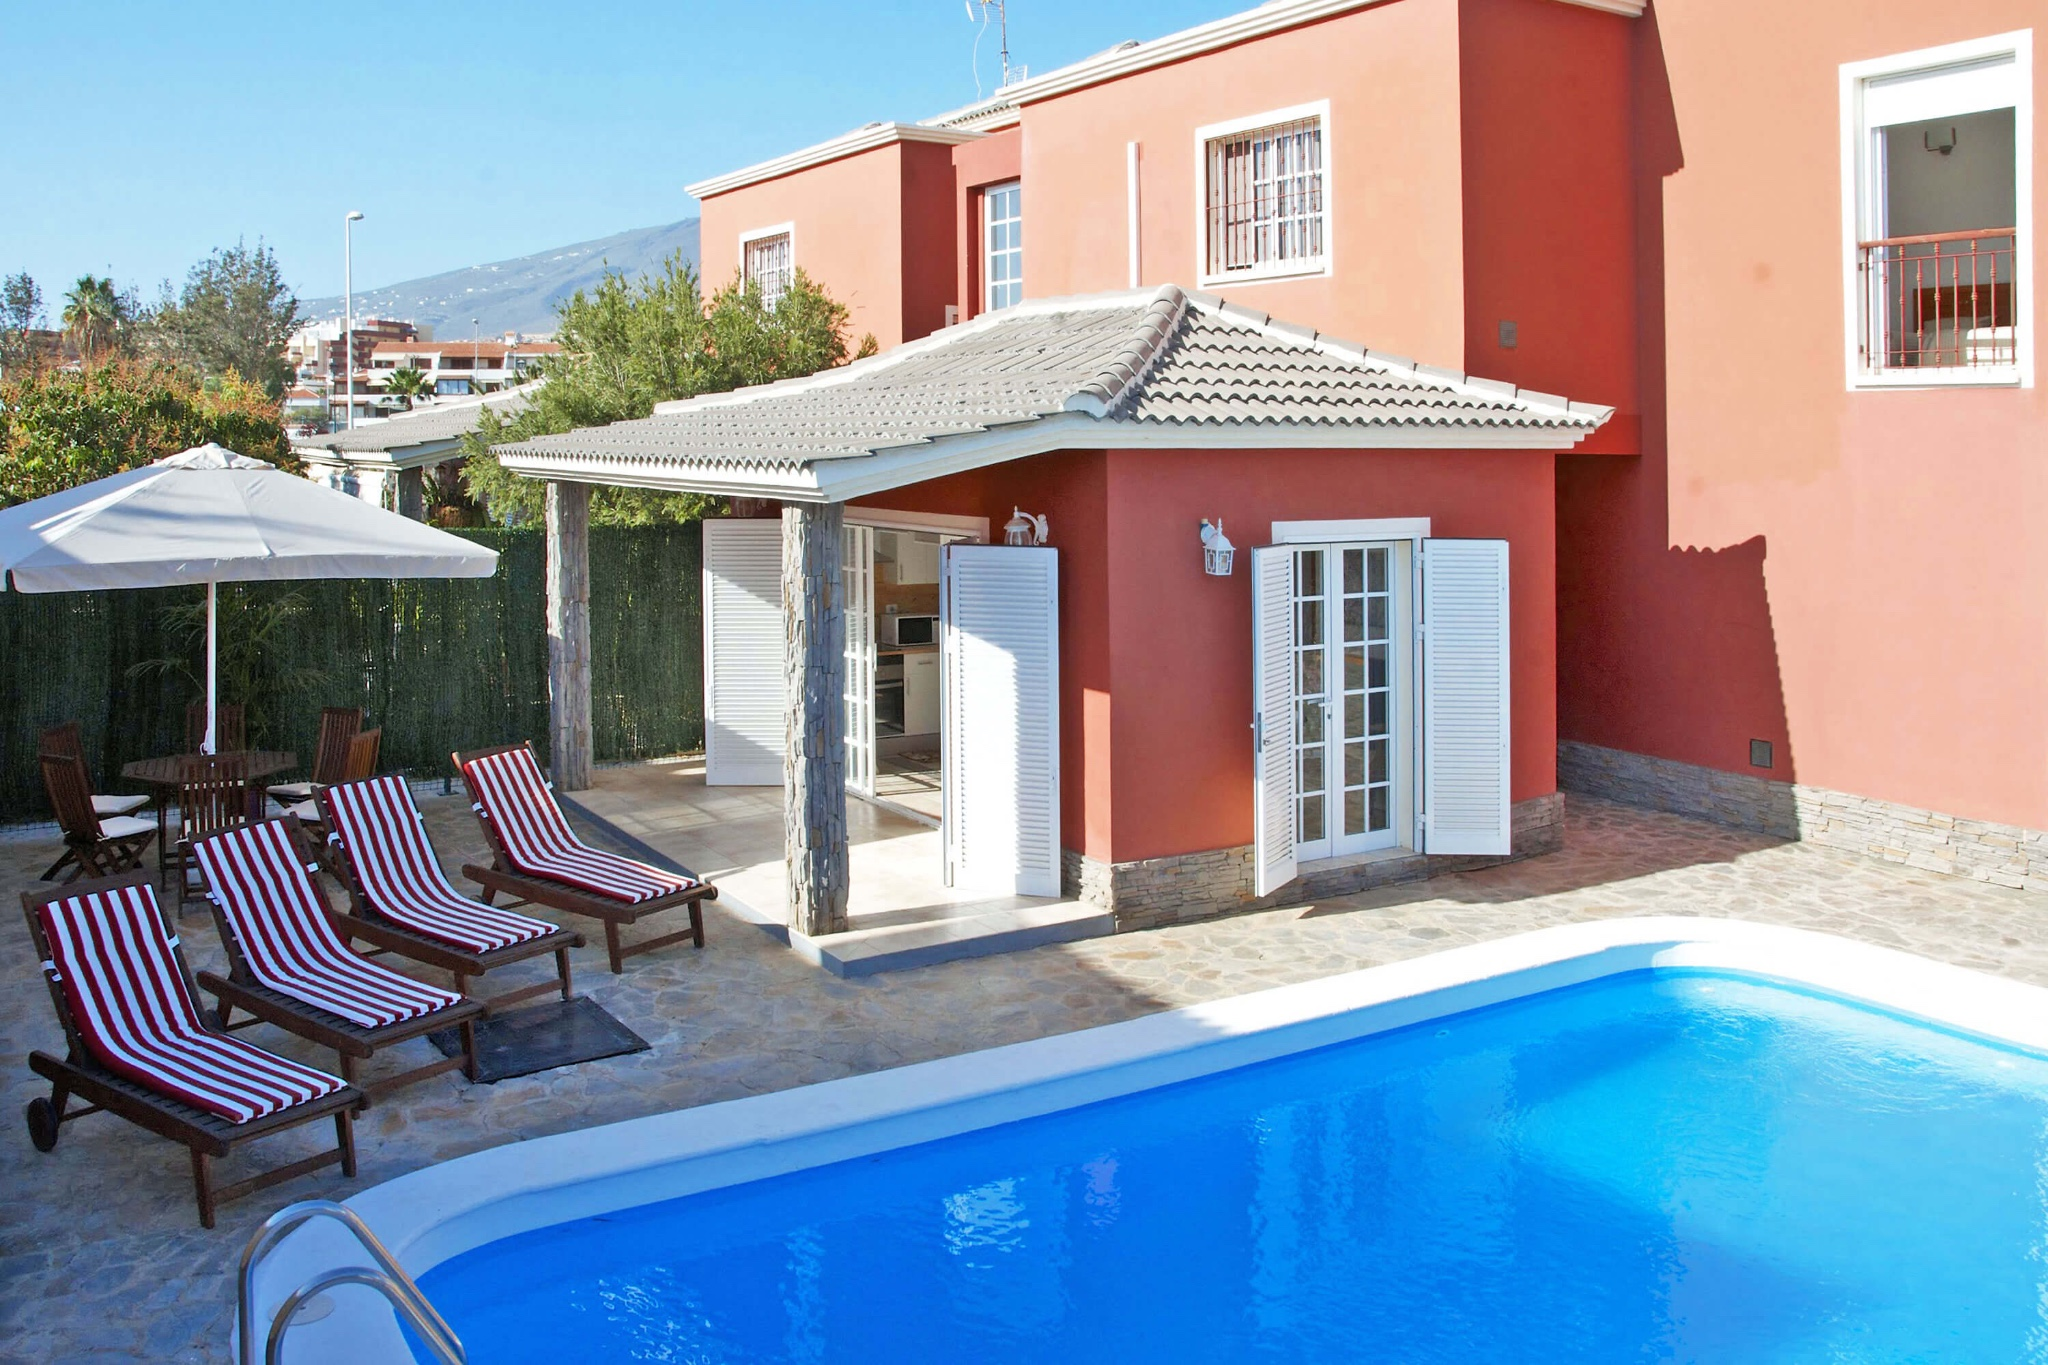 Comfortable holiday home for up to 8 personas with private pool and barbecue in a residential zone near the beach of Fañabé in Adeje